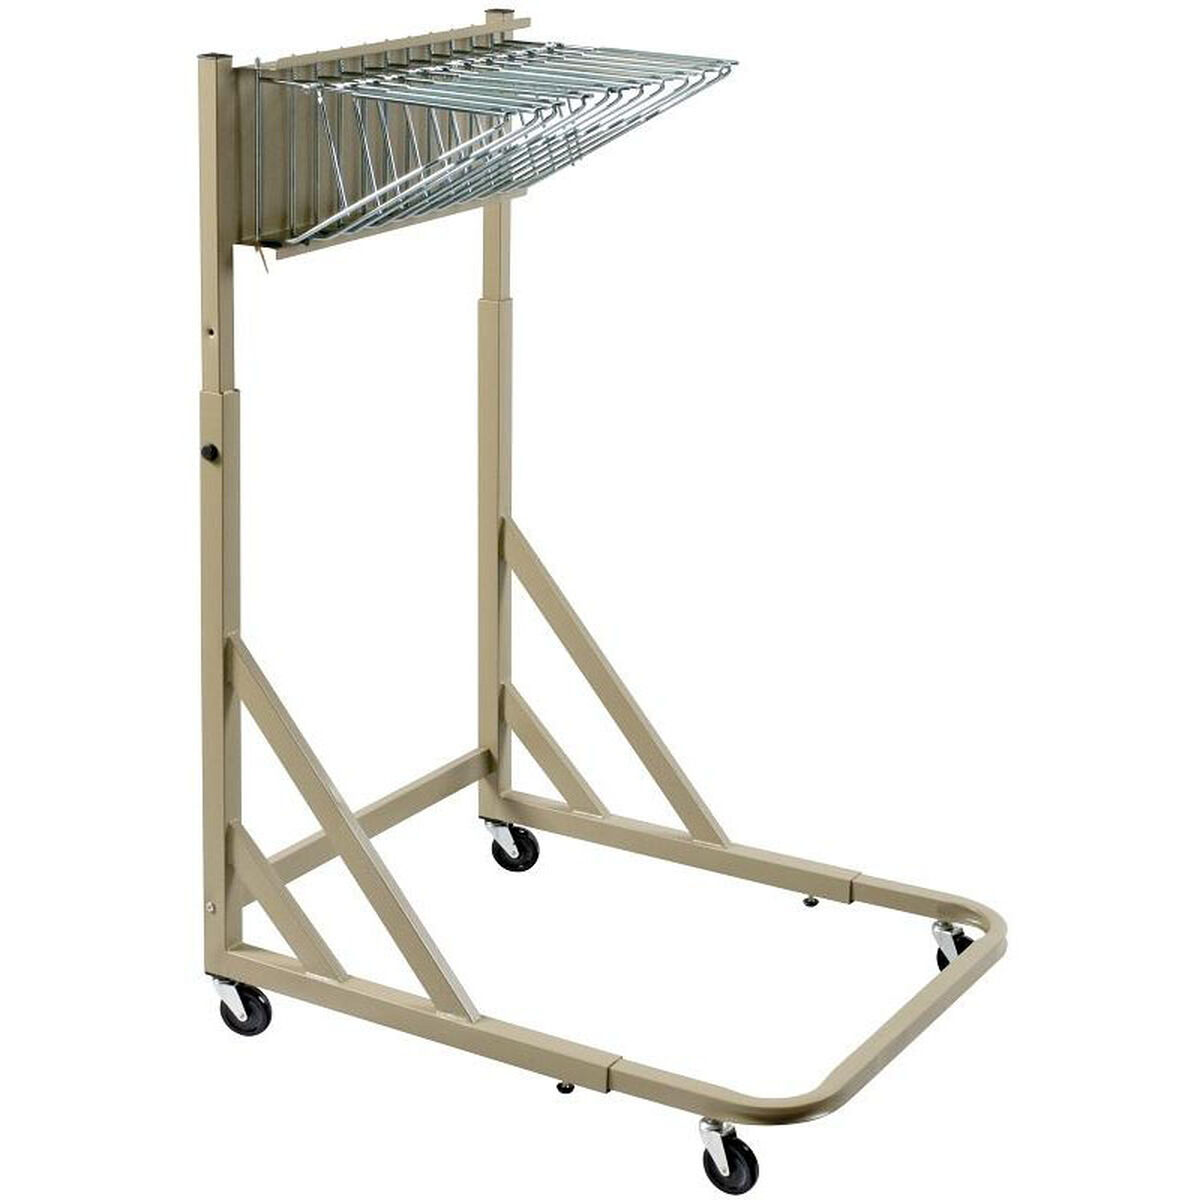 Our Mobile Pivot Steel Rack For Blueprints Is On Now